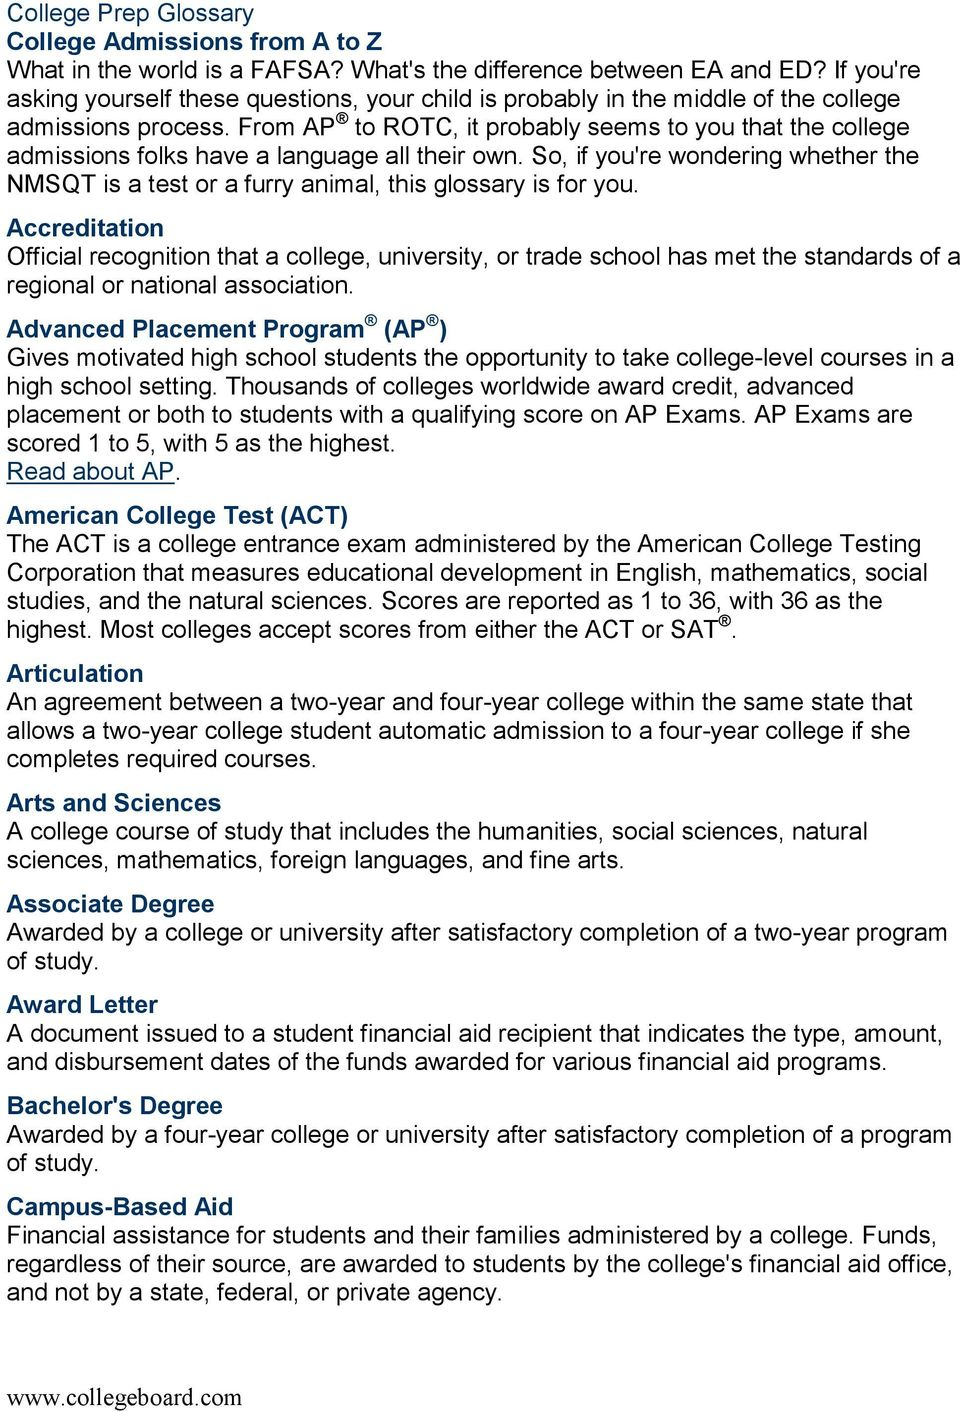 From AP to ROTC, it probably seems to you that the college admissions folks have a language all their own.